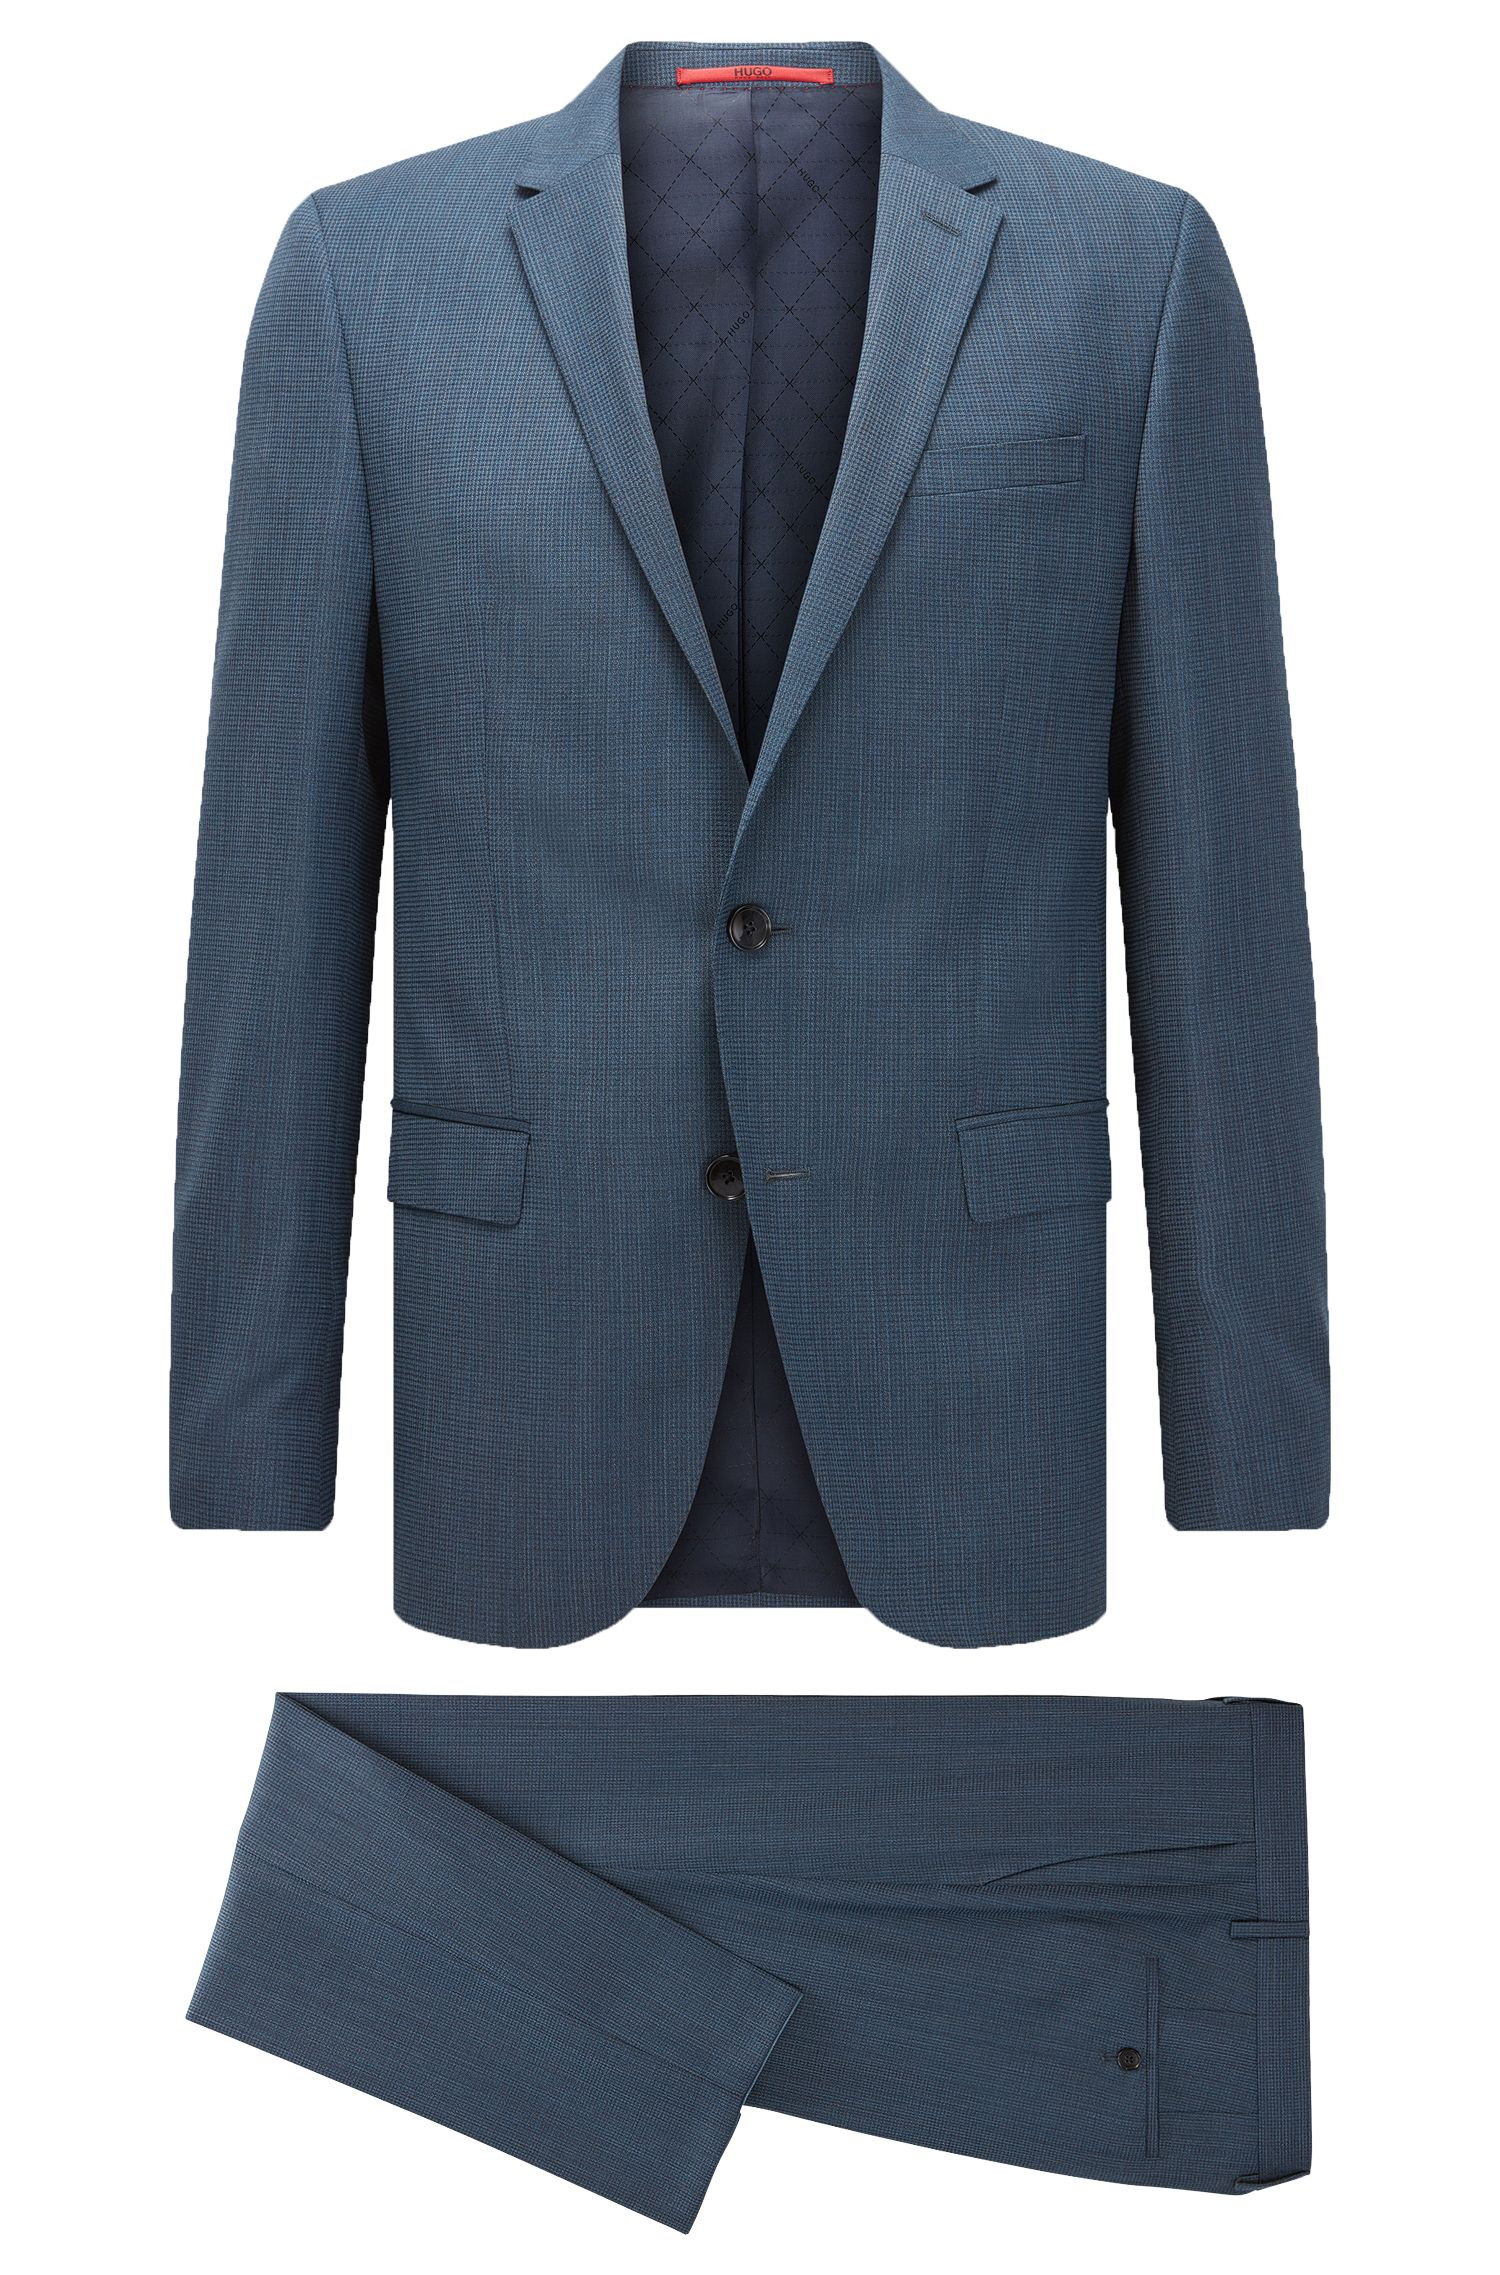 Stretch Virgin Wool Blend Suit, Slim Fit | C-Harvey/C-Getlin, Dark Blue